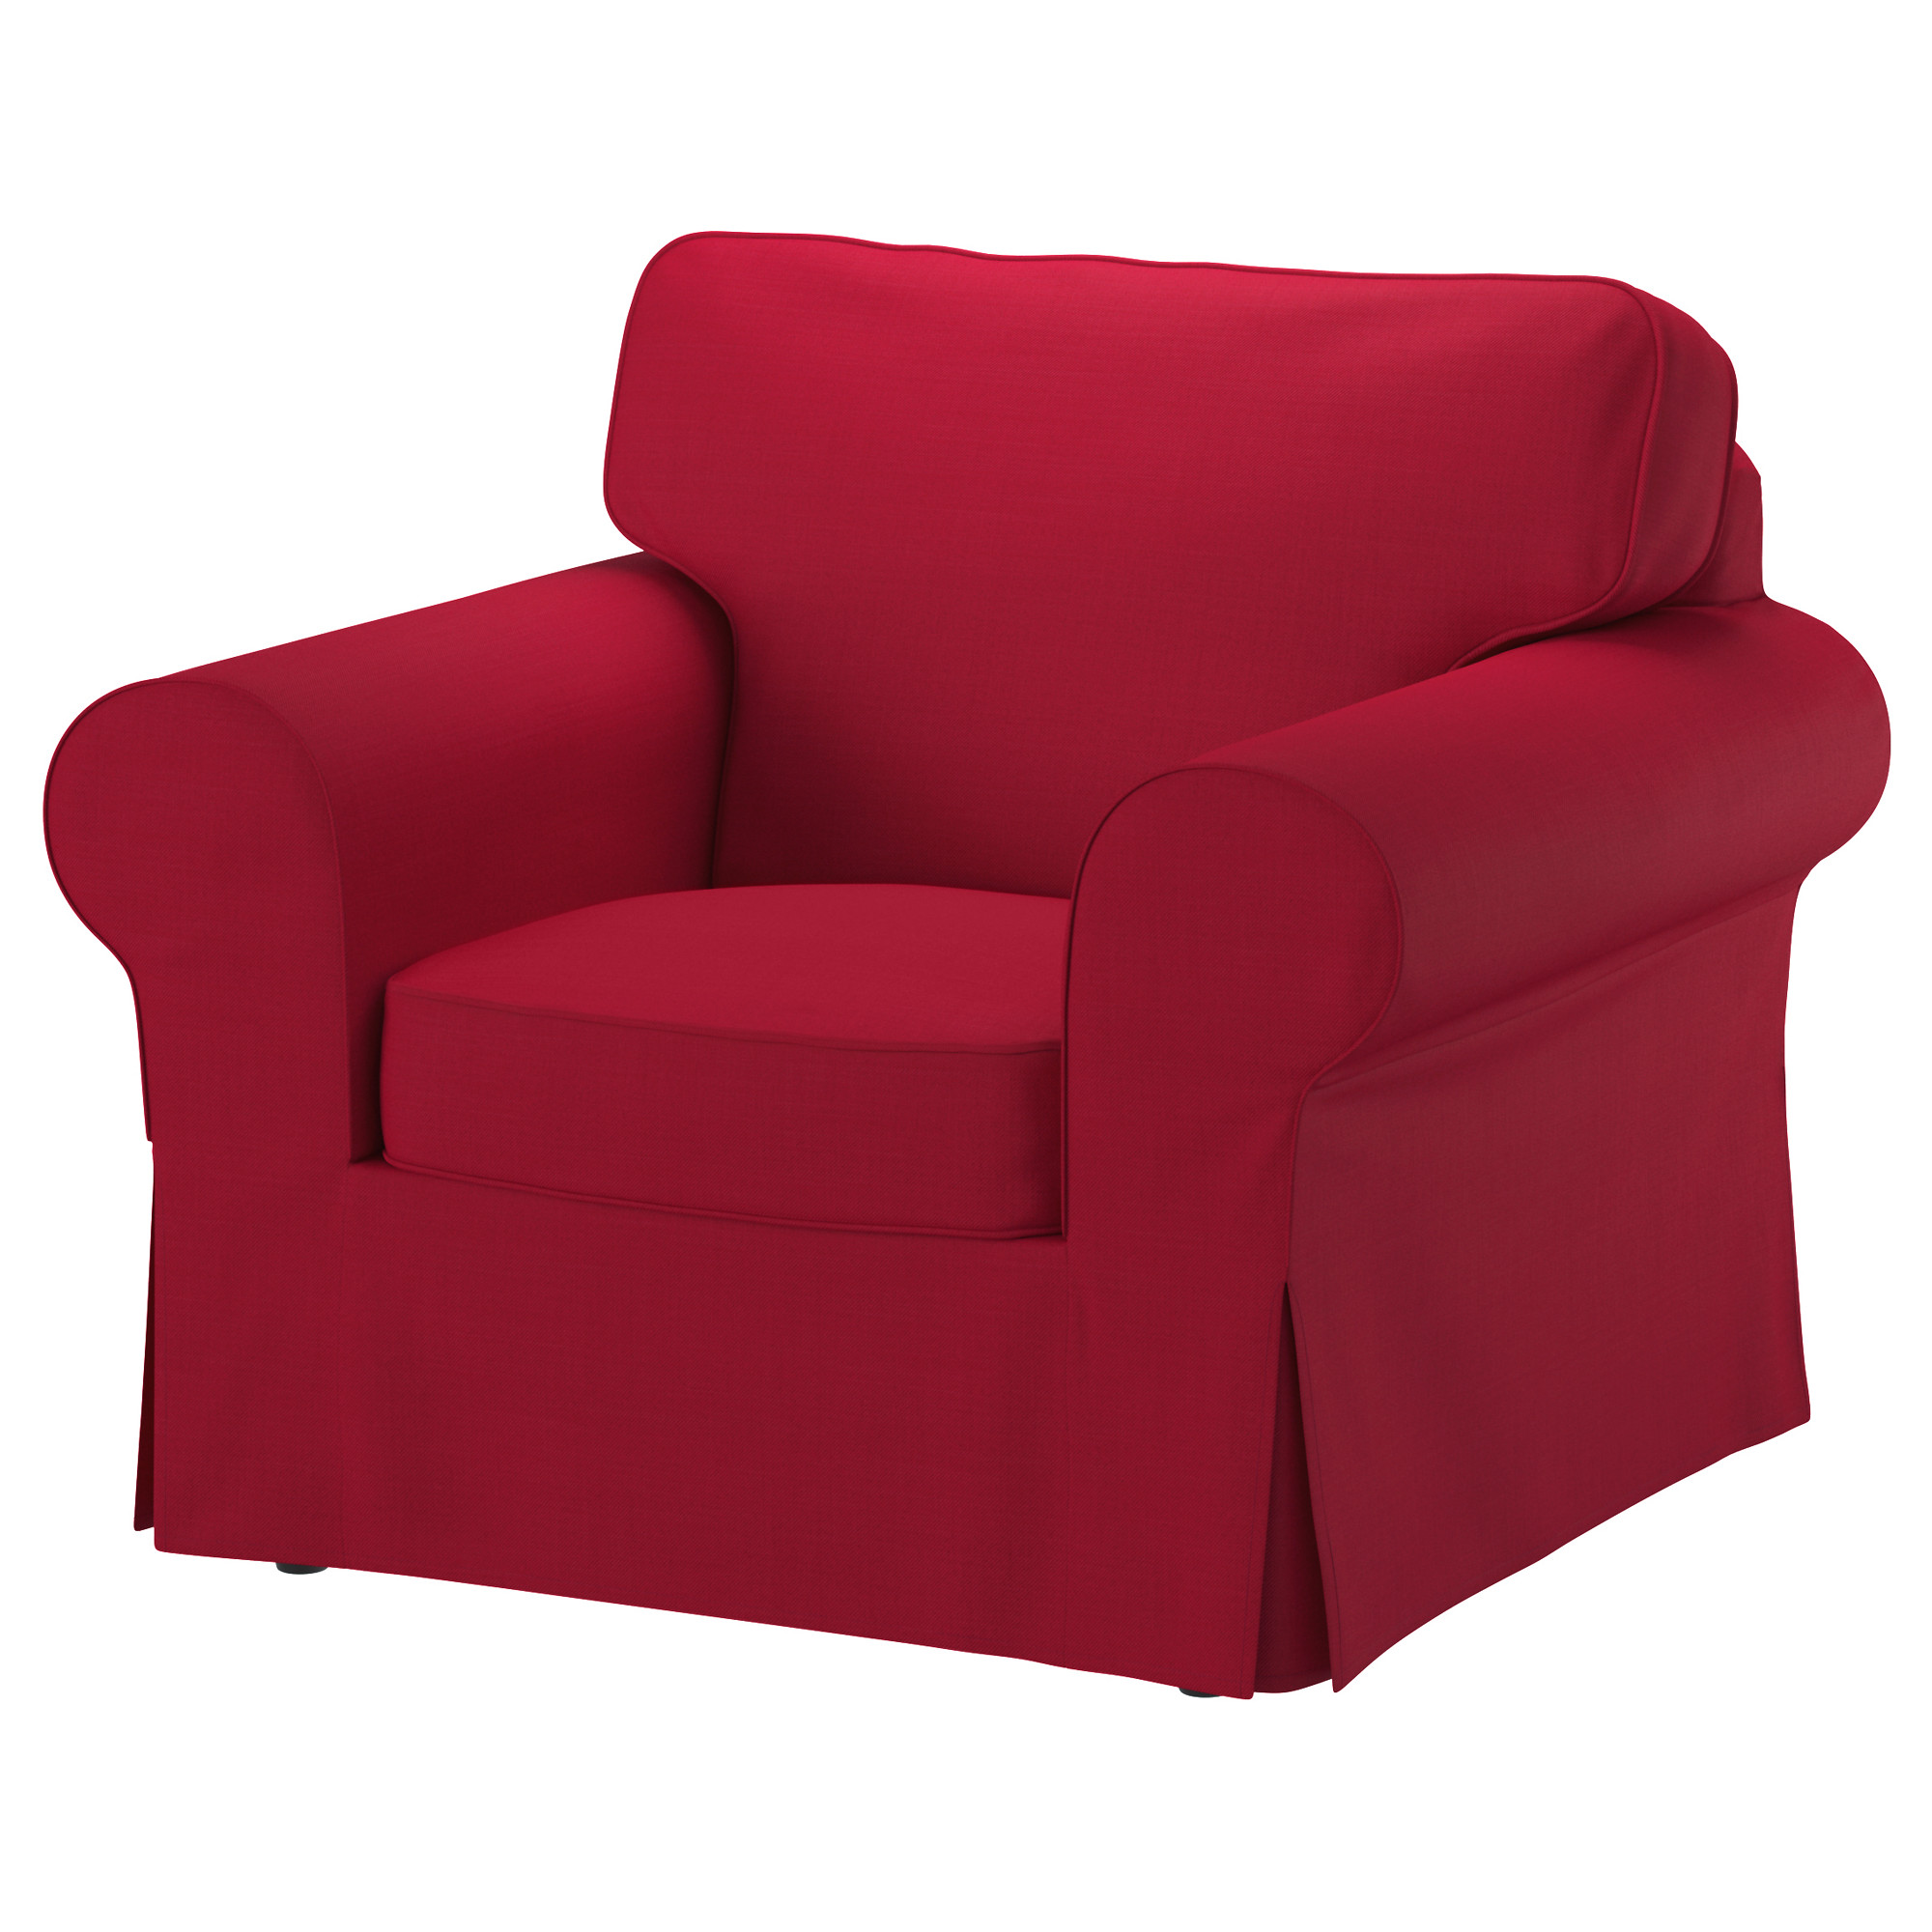 Sofa And Armchair Covers Ikea Ektorp Armchair The Cover Is Easy To Keep Clean As It Is